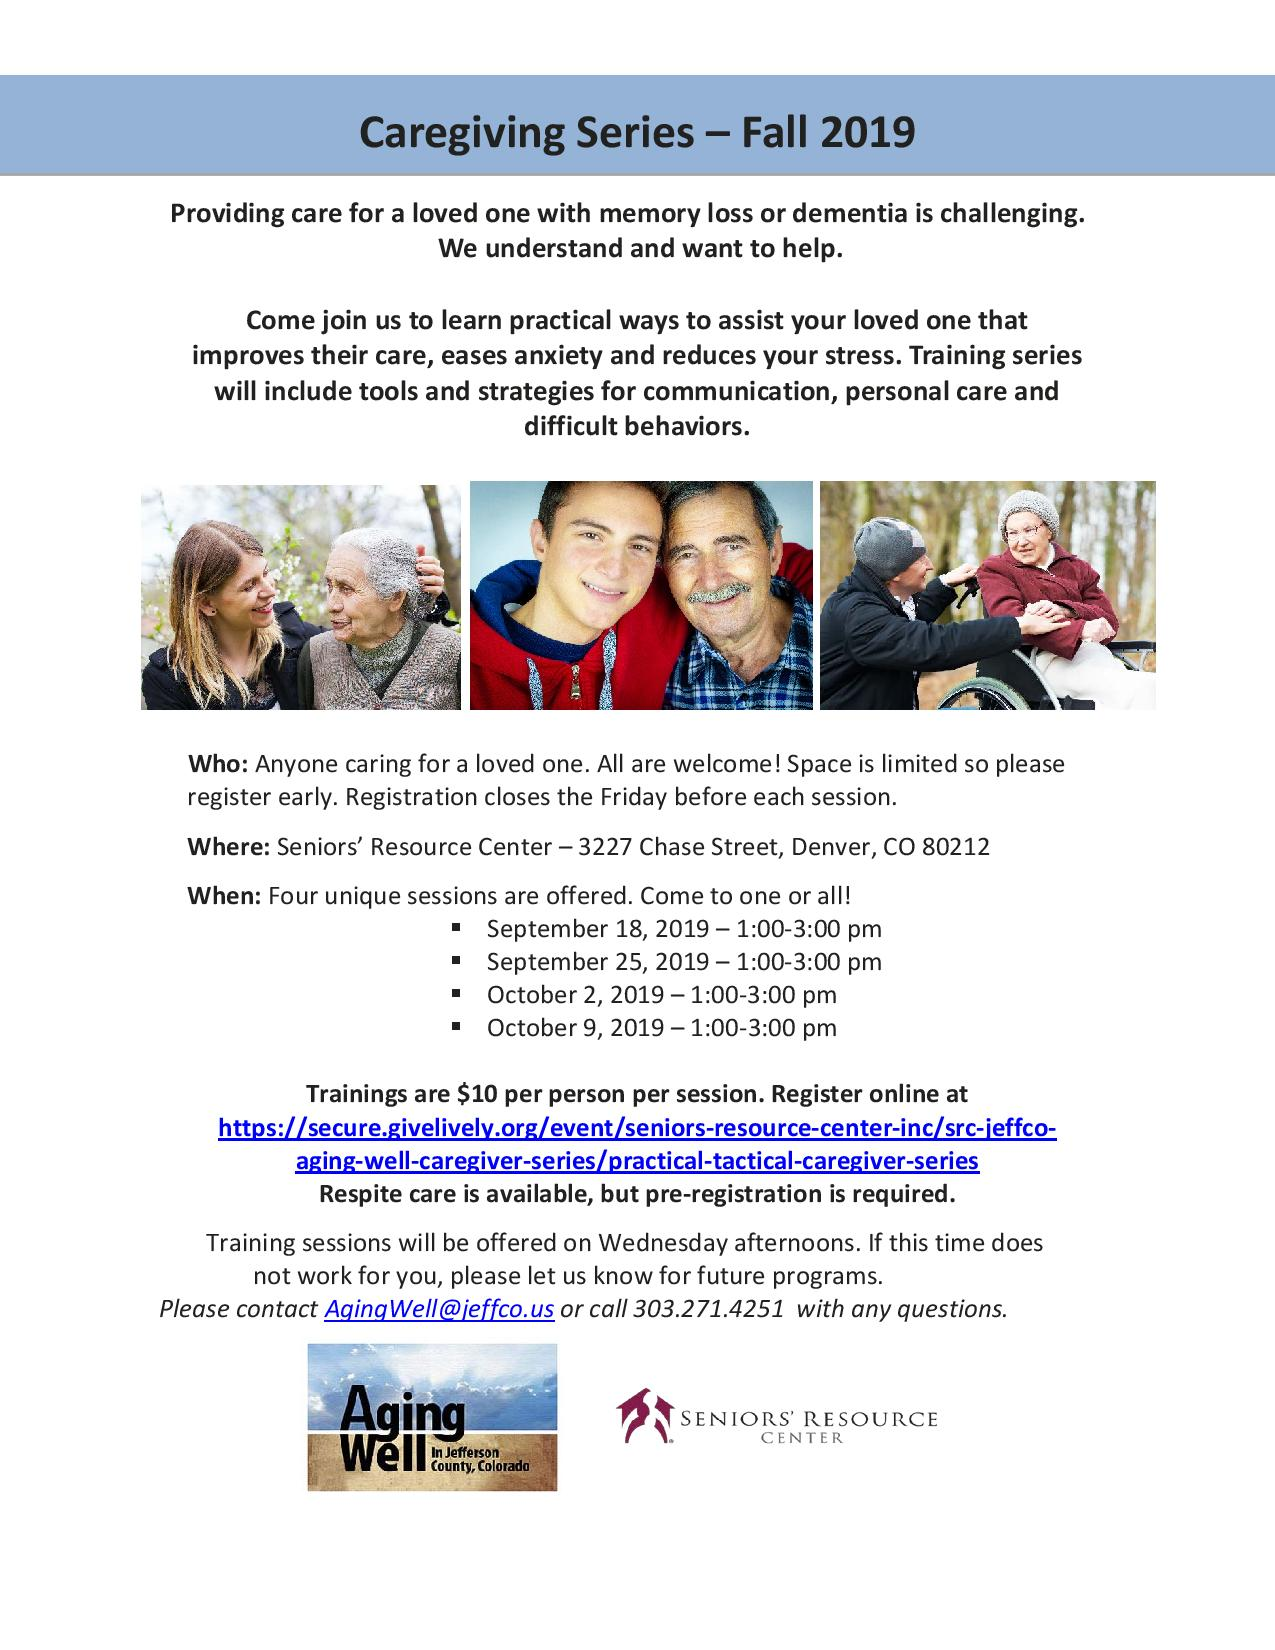 Aging Well caregiving series flyer 2019-page-001.jpg